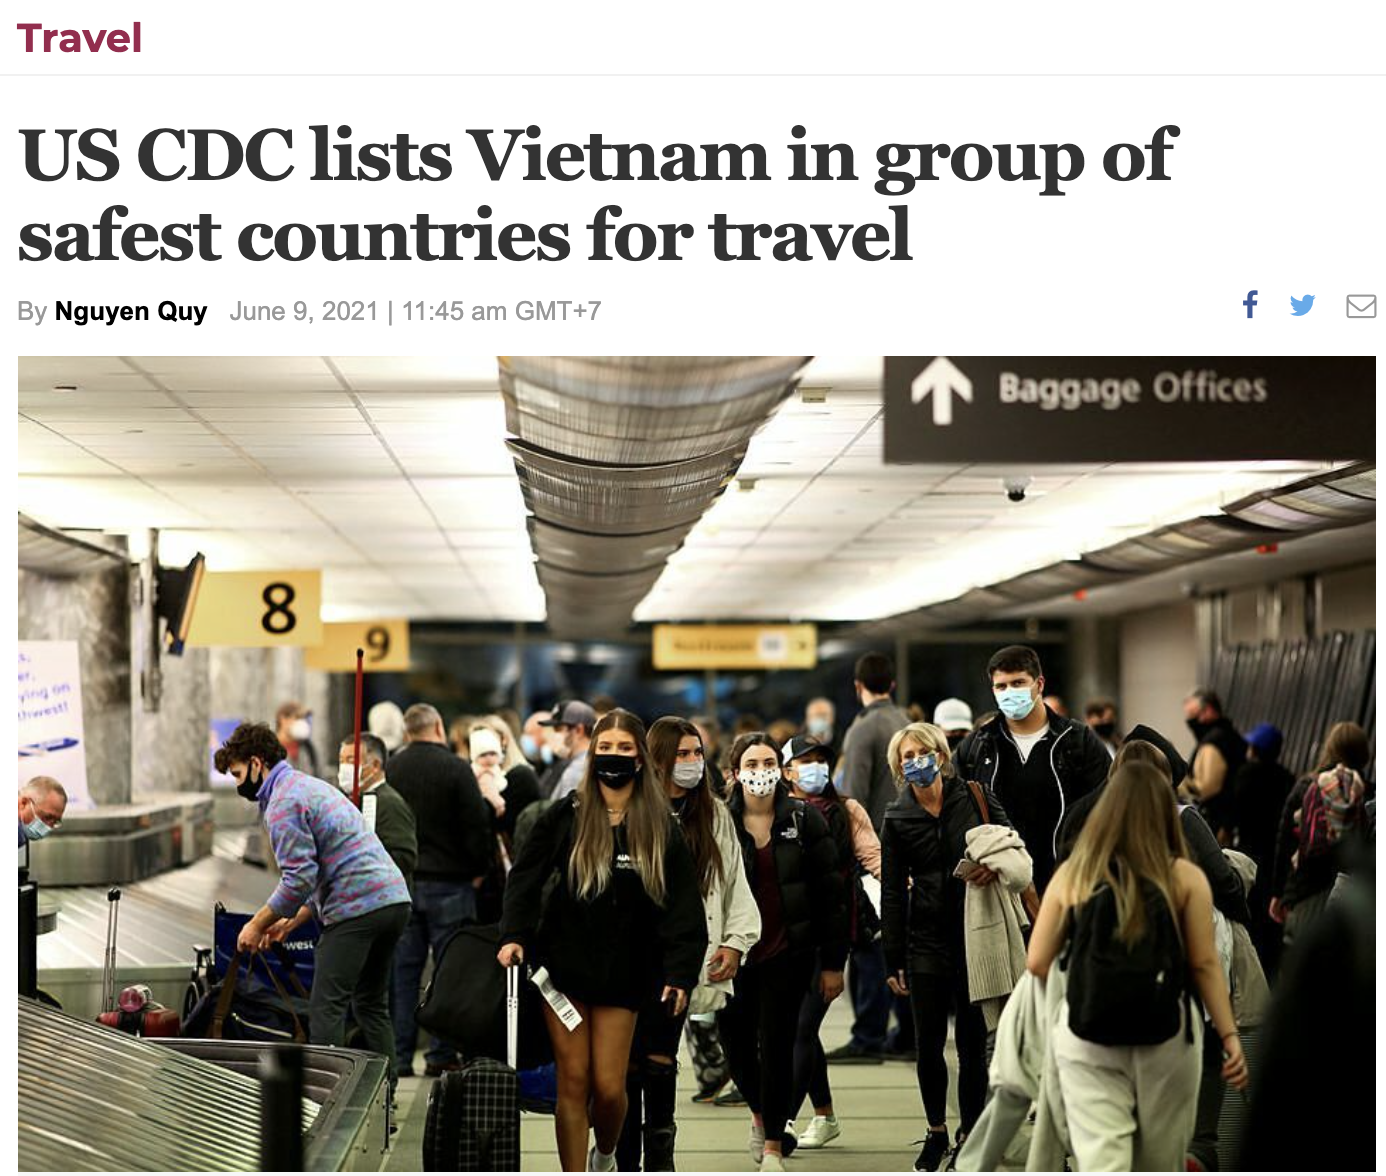 US CDC lists Vietnam in group of safest countries for travel